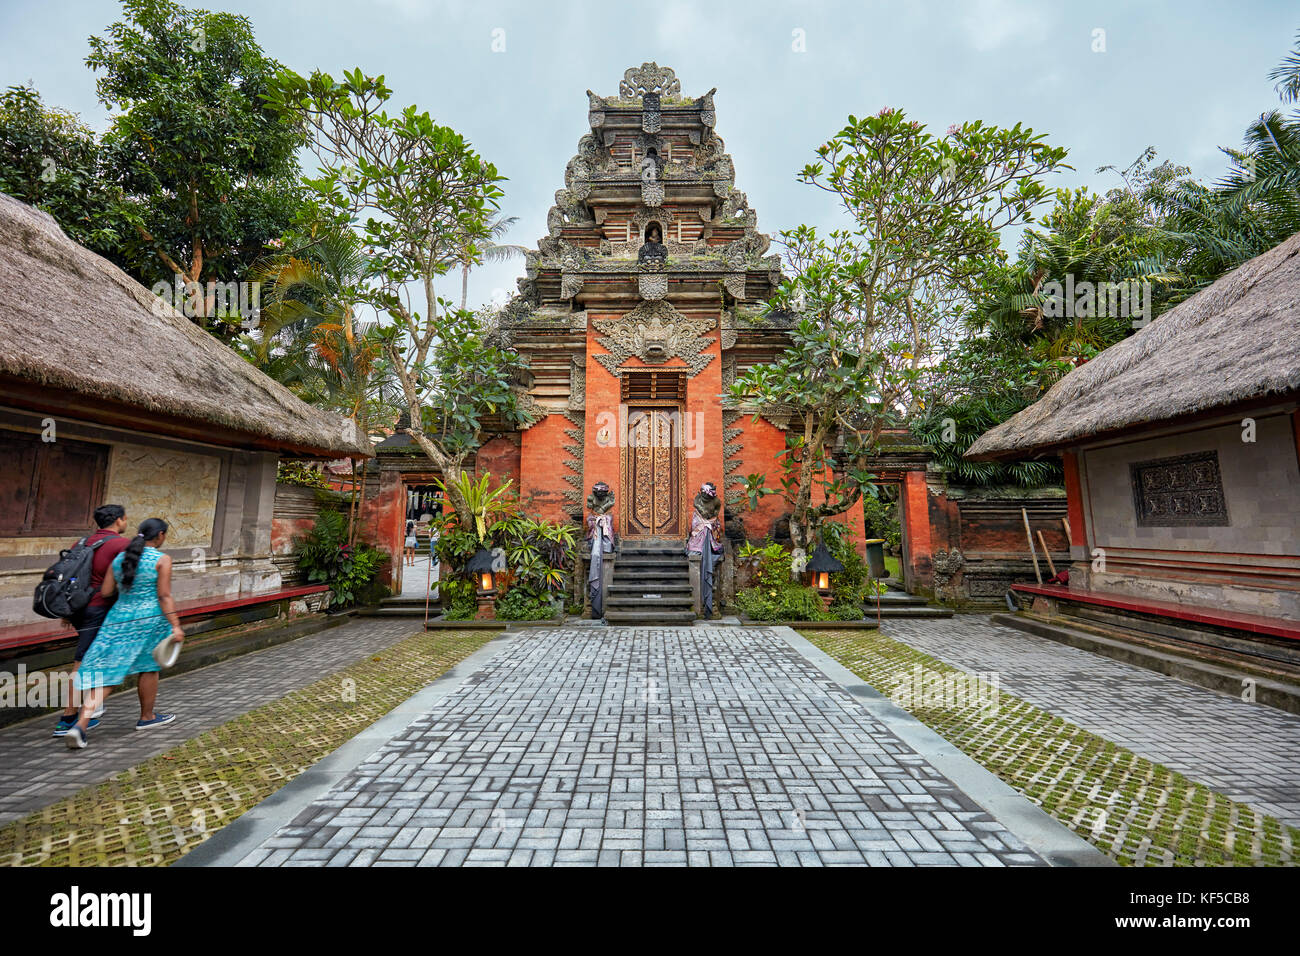 Puri Saren Agung, also known as Ubud Palace. Ubud, Bali, Indonesia. - Stock Image